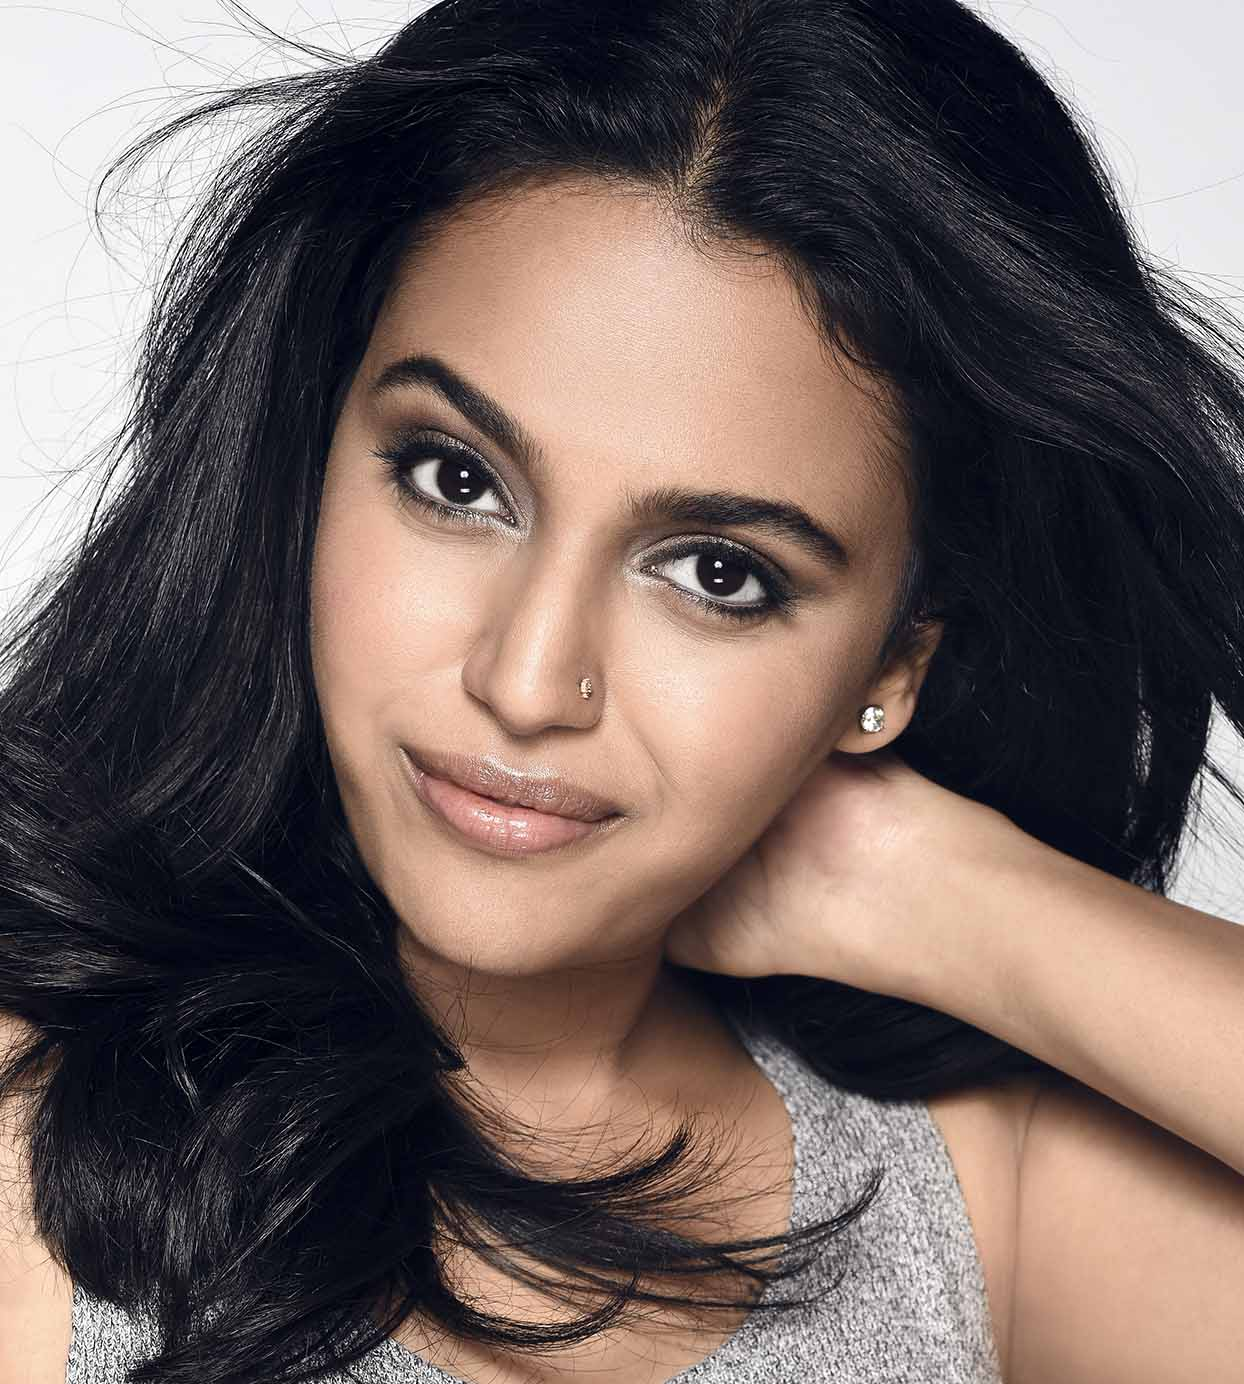 Wallpaper Images With Tamil Quotes Busy Bee Swara Bhaskar Balances Two Films Together The